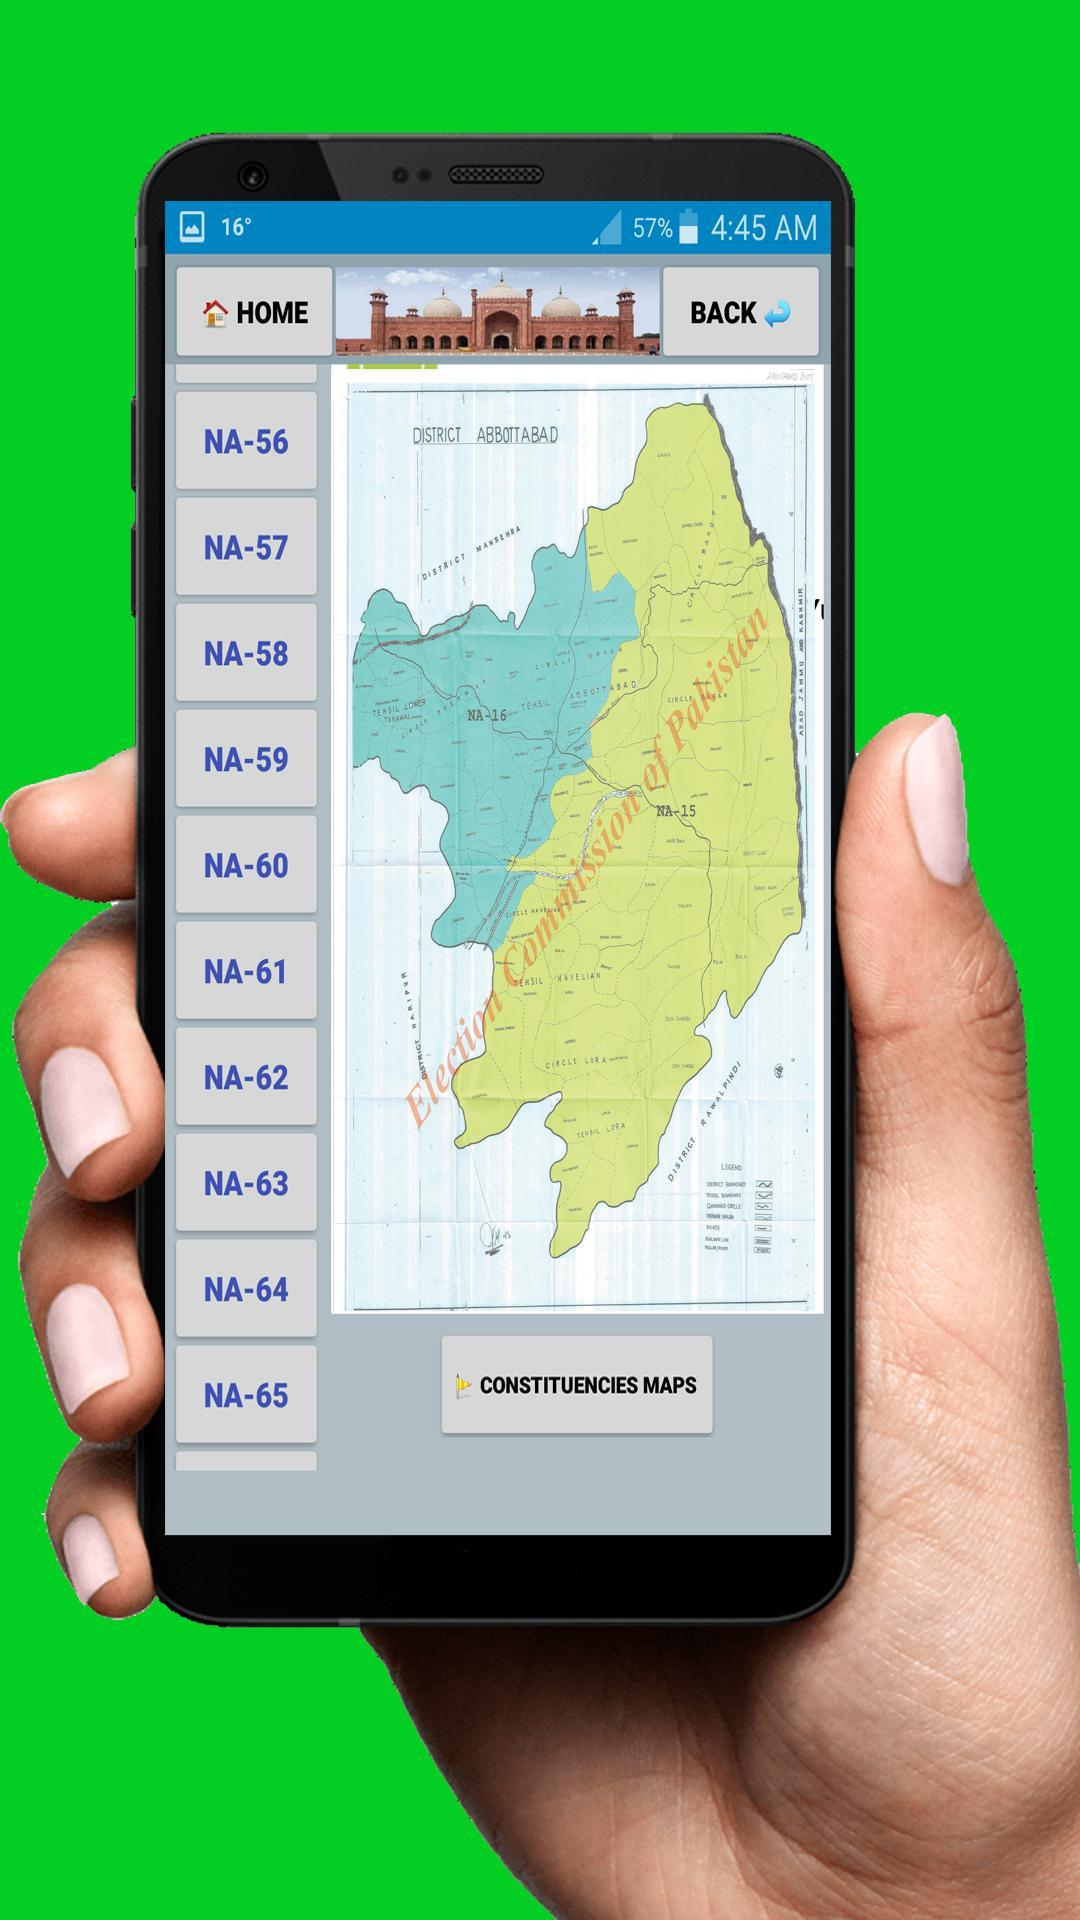 Pakistan General Election 2018 [Results & Data] for Android - APK